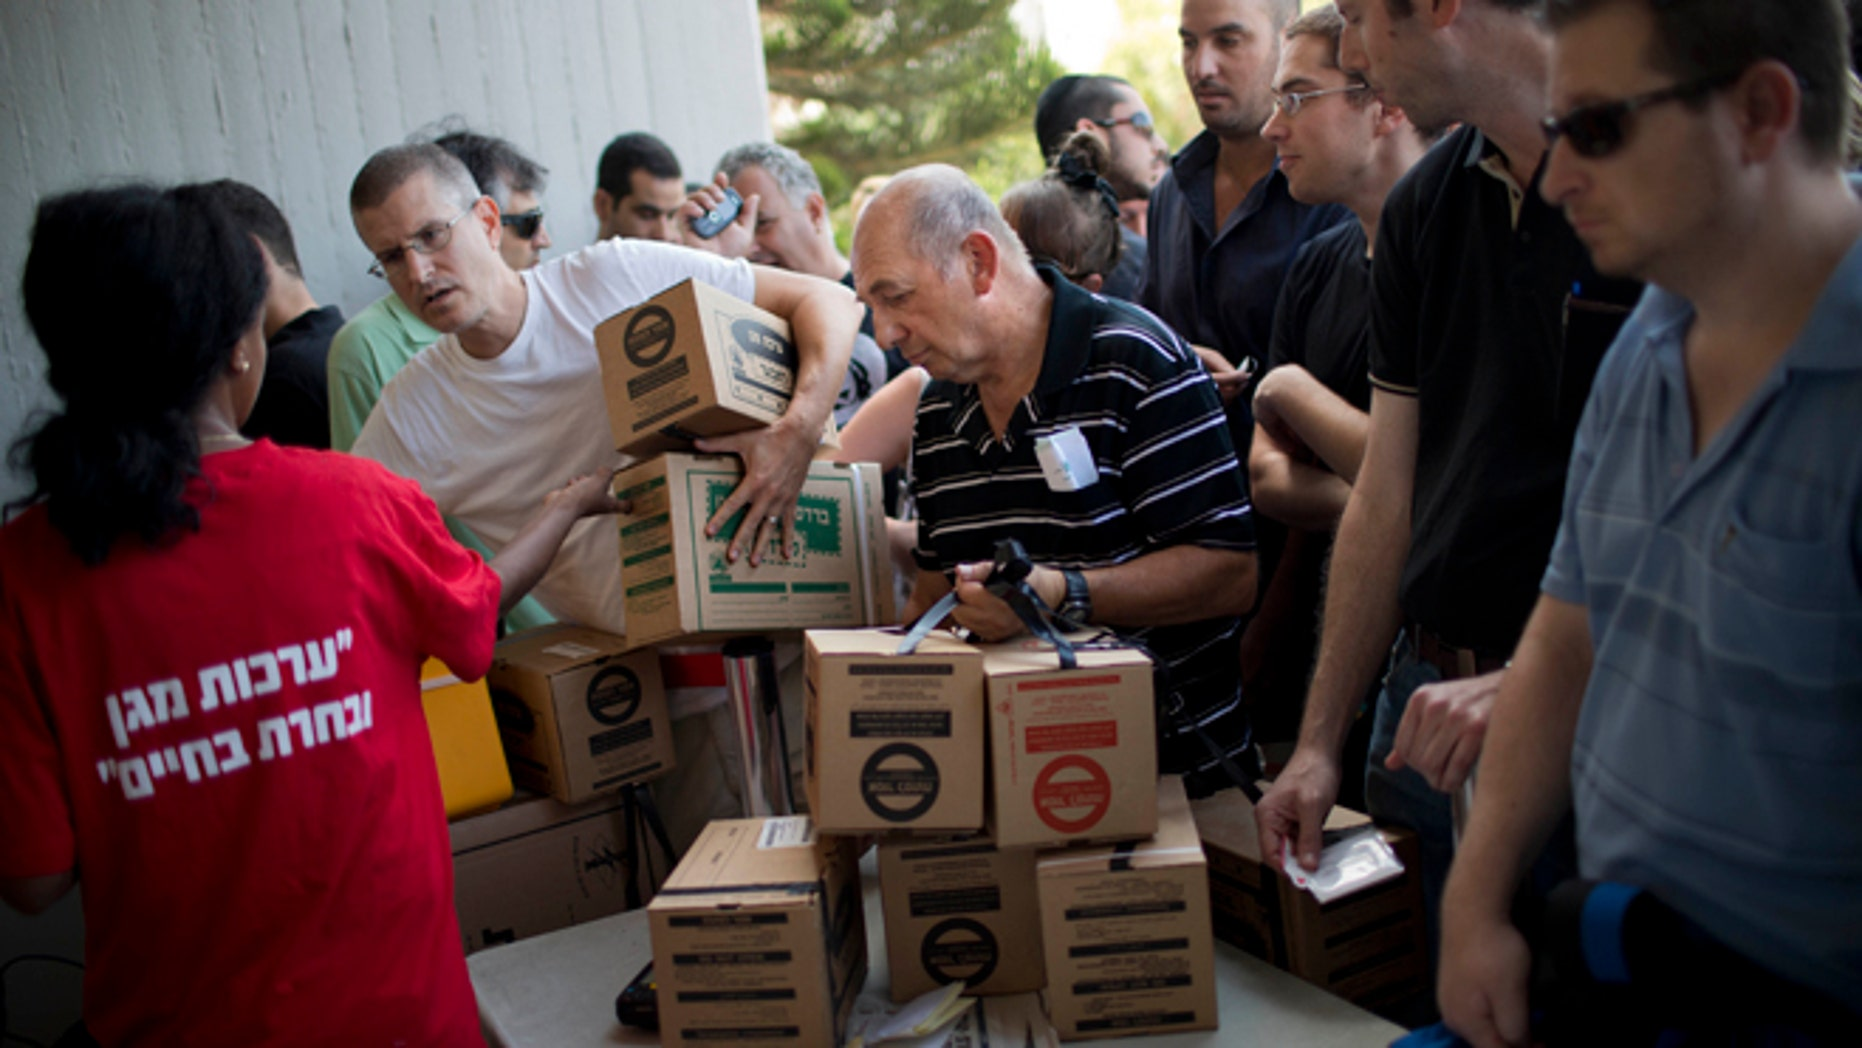 Aug. 28, 2013: Israelis line up at a gas mask distribution center in Tel Aviv, Israel. Large crowds of Israelis have lined up at gas-mask distribution centers across the country in anticipation of a possible Syrian attack on Israel.